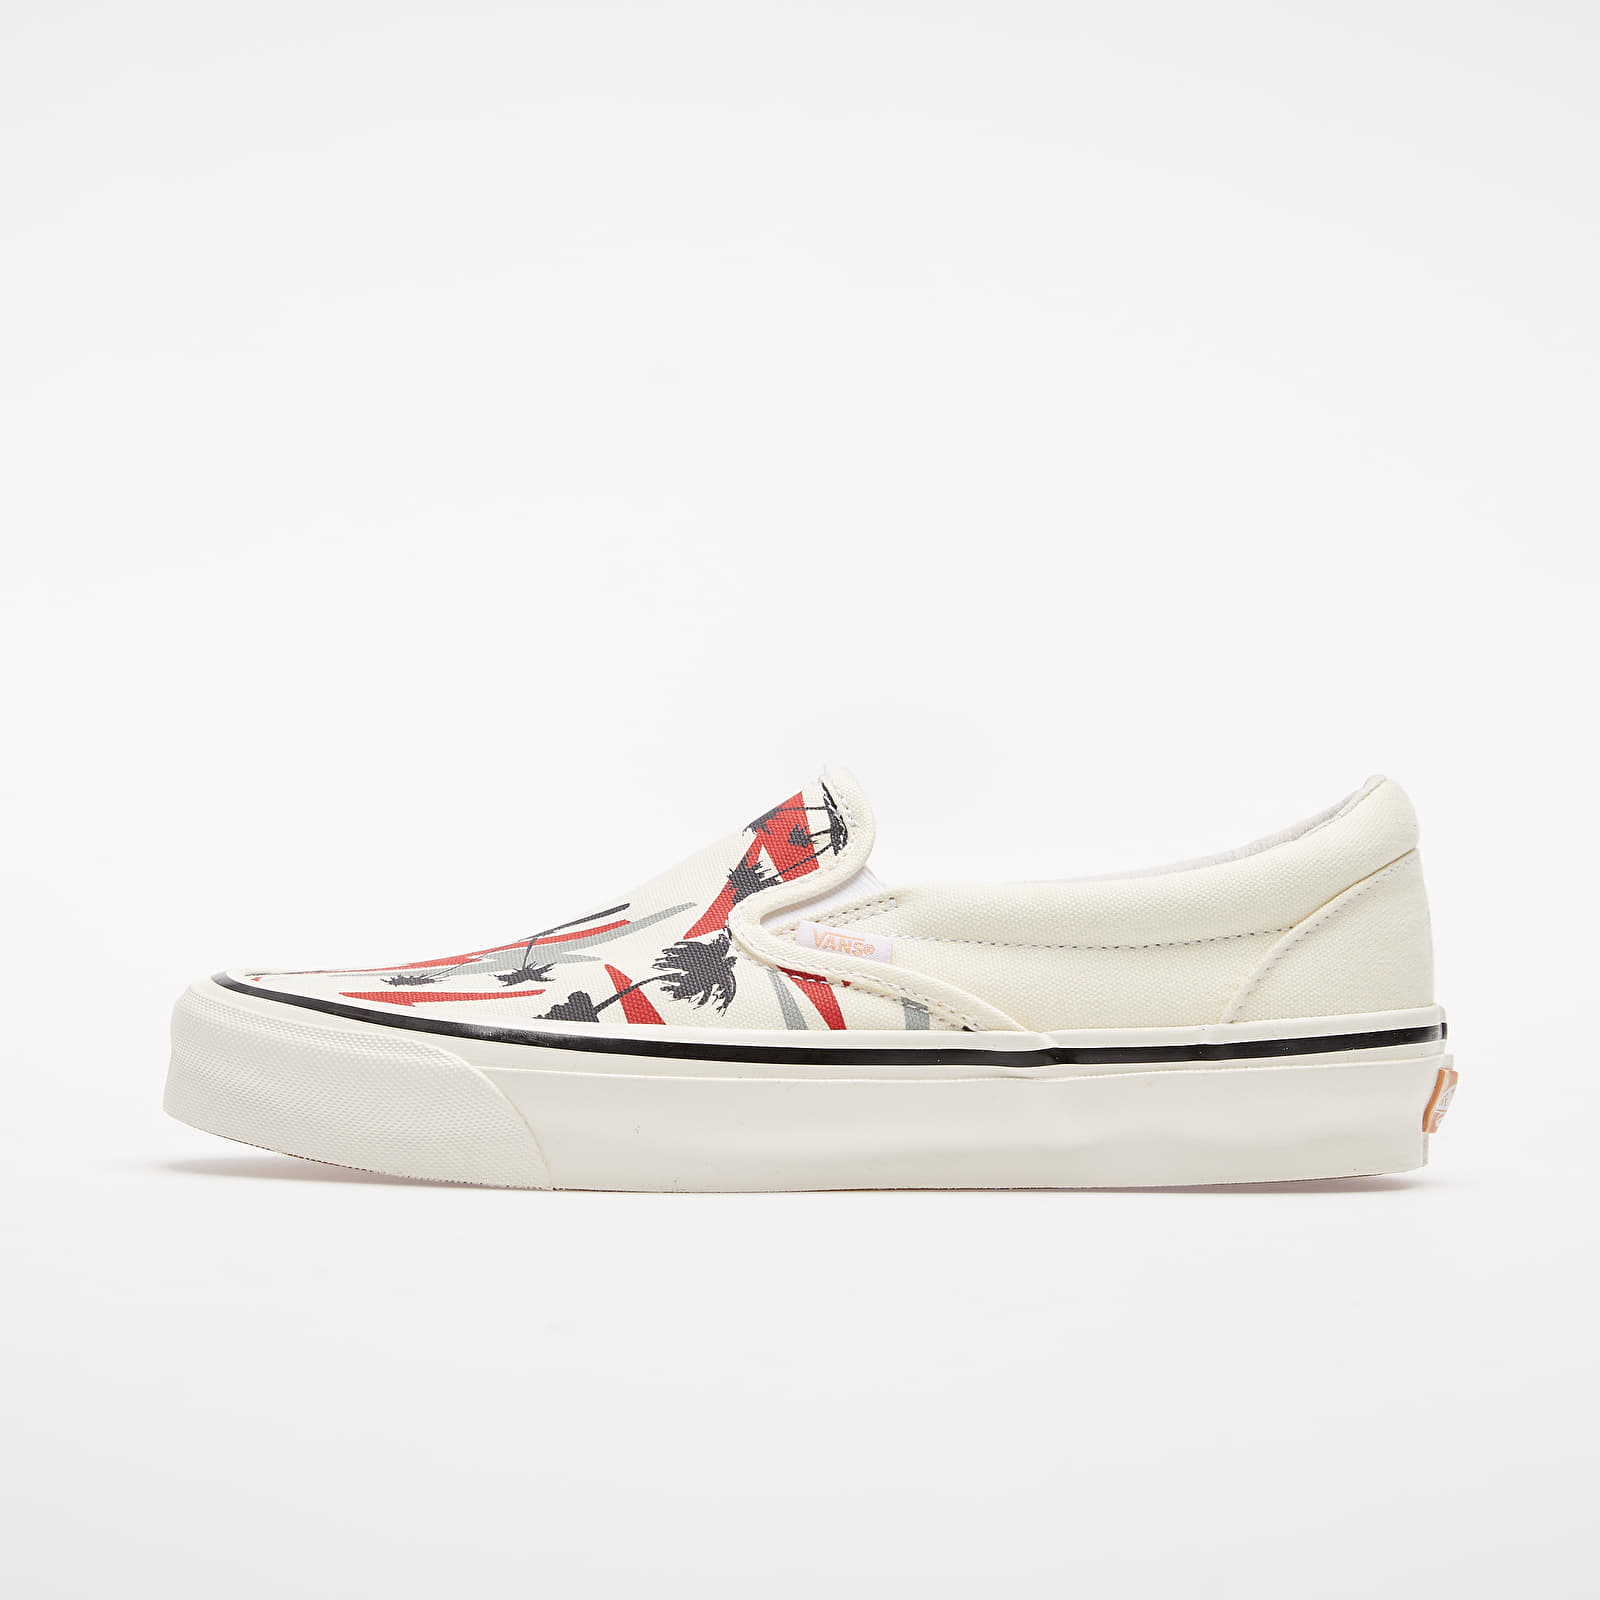 Men's shoes Vans OG Classic Slip-On (Copson) Classic White/ Blac De Blanc